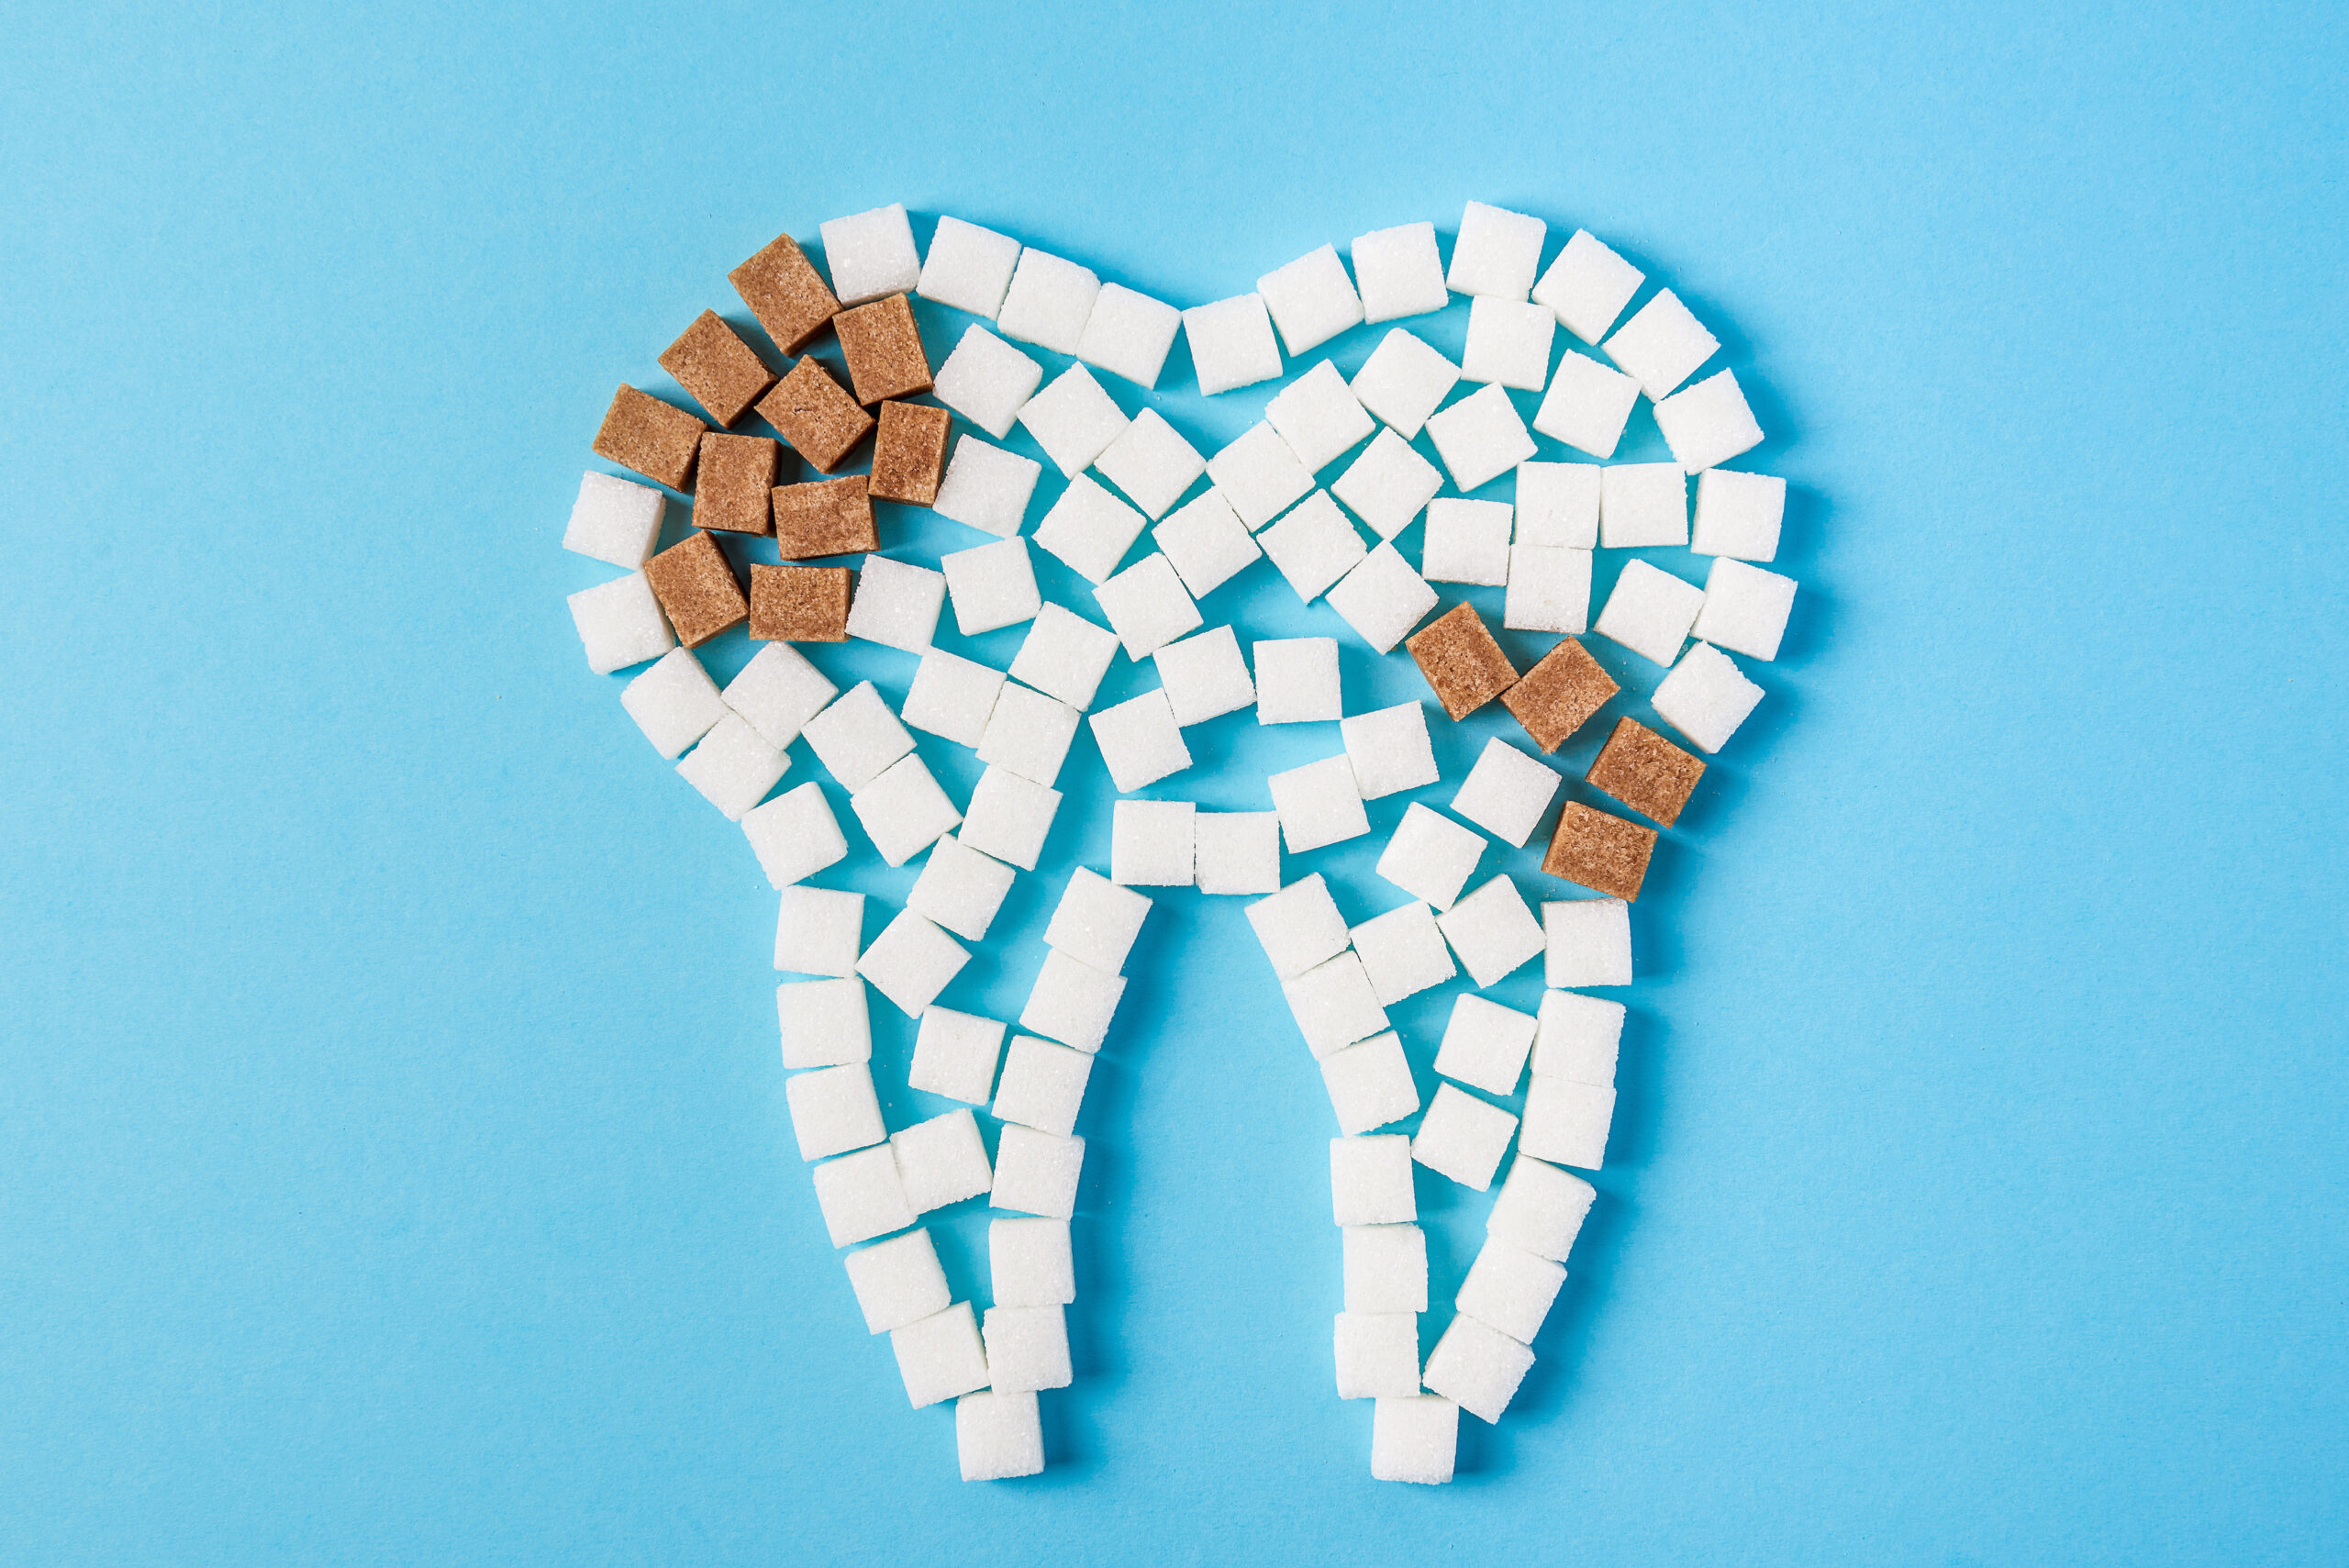 Sugar destroys the tooth enamel and leads to tooth decay. Tooth made of white sugar cubes and caries made of brown sugar cubes. Top view. Close up